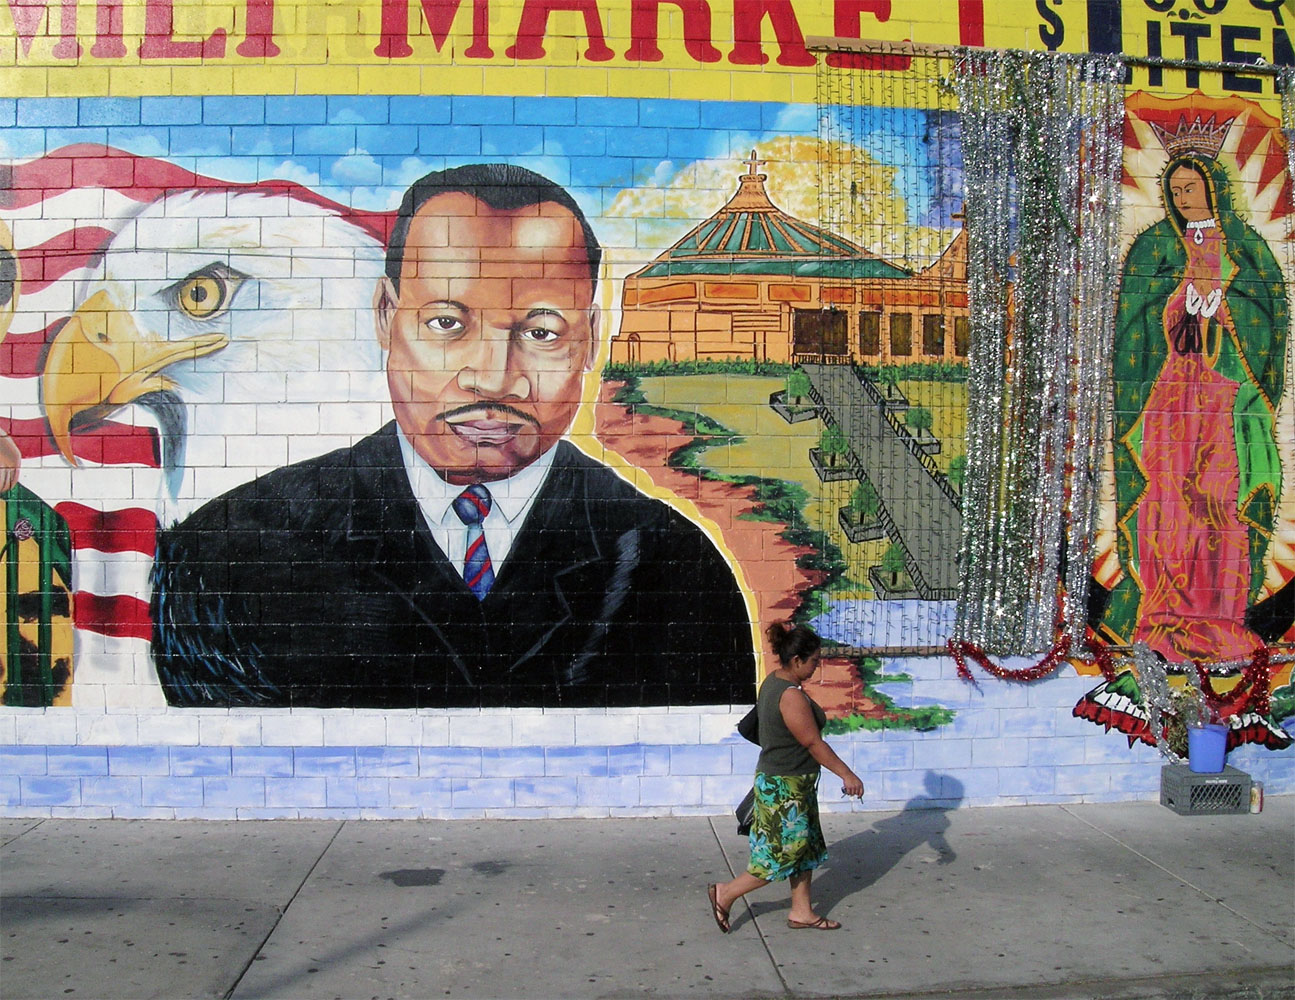 Ila Family Market, 50 Place and South Vermont Avenue, Los Angeles2004